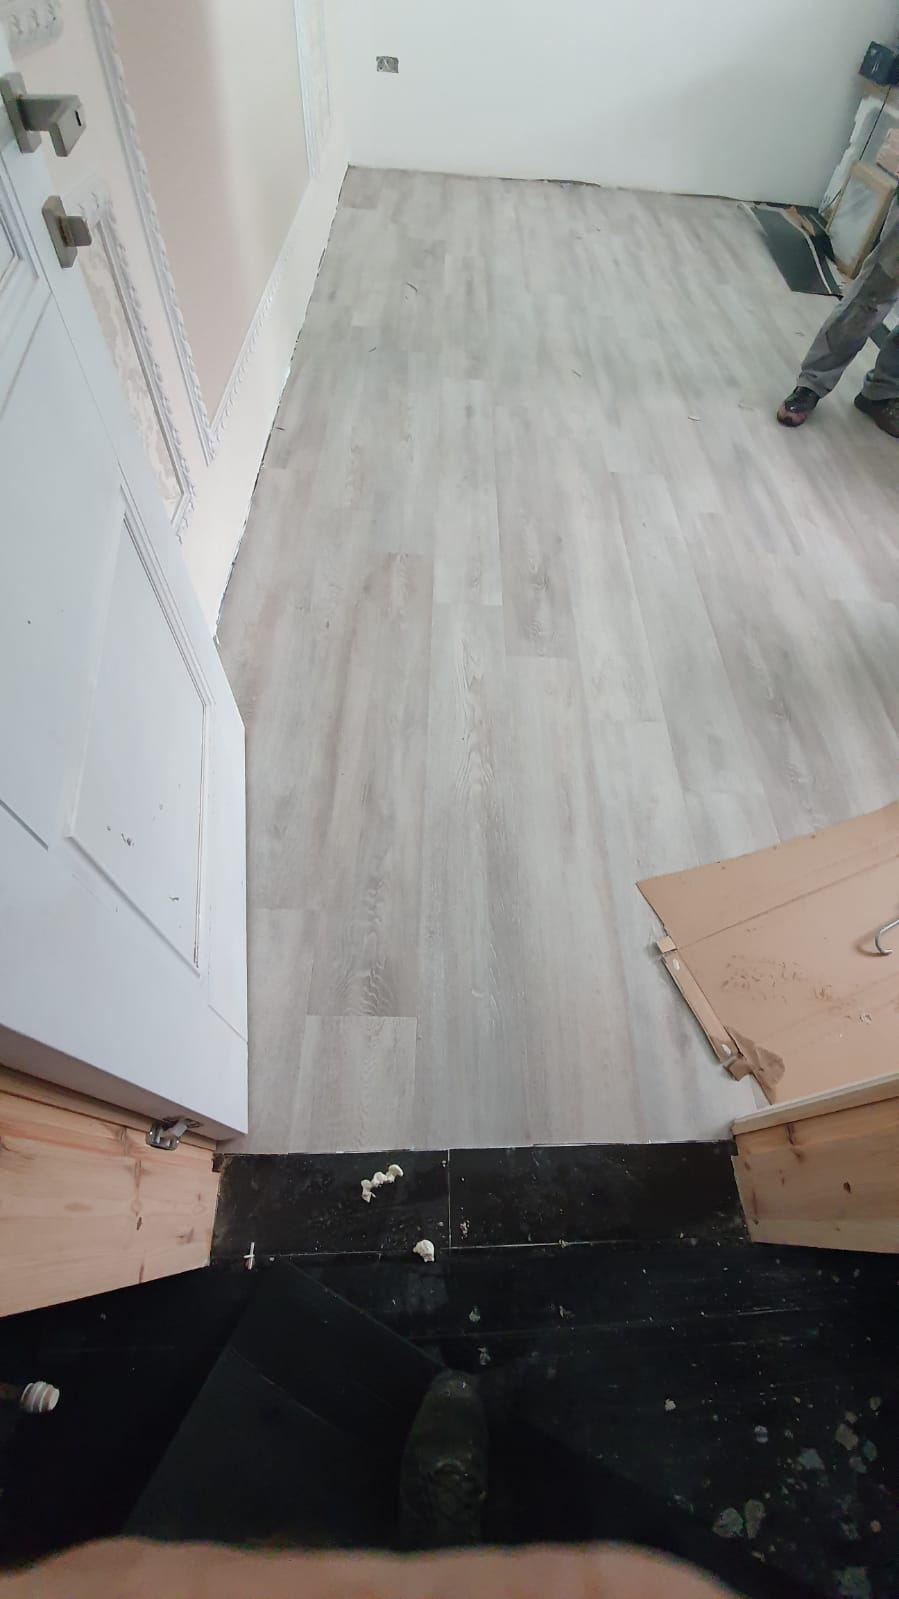 Moduleo Vinyl Flooring In Kensington 2